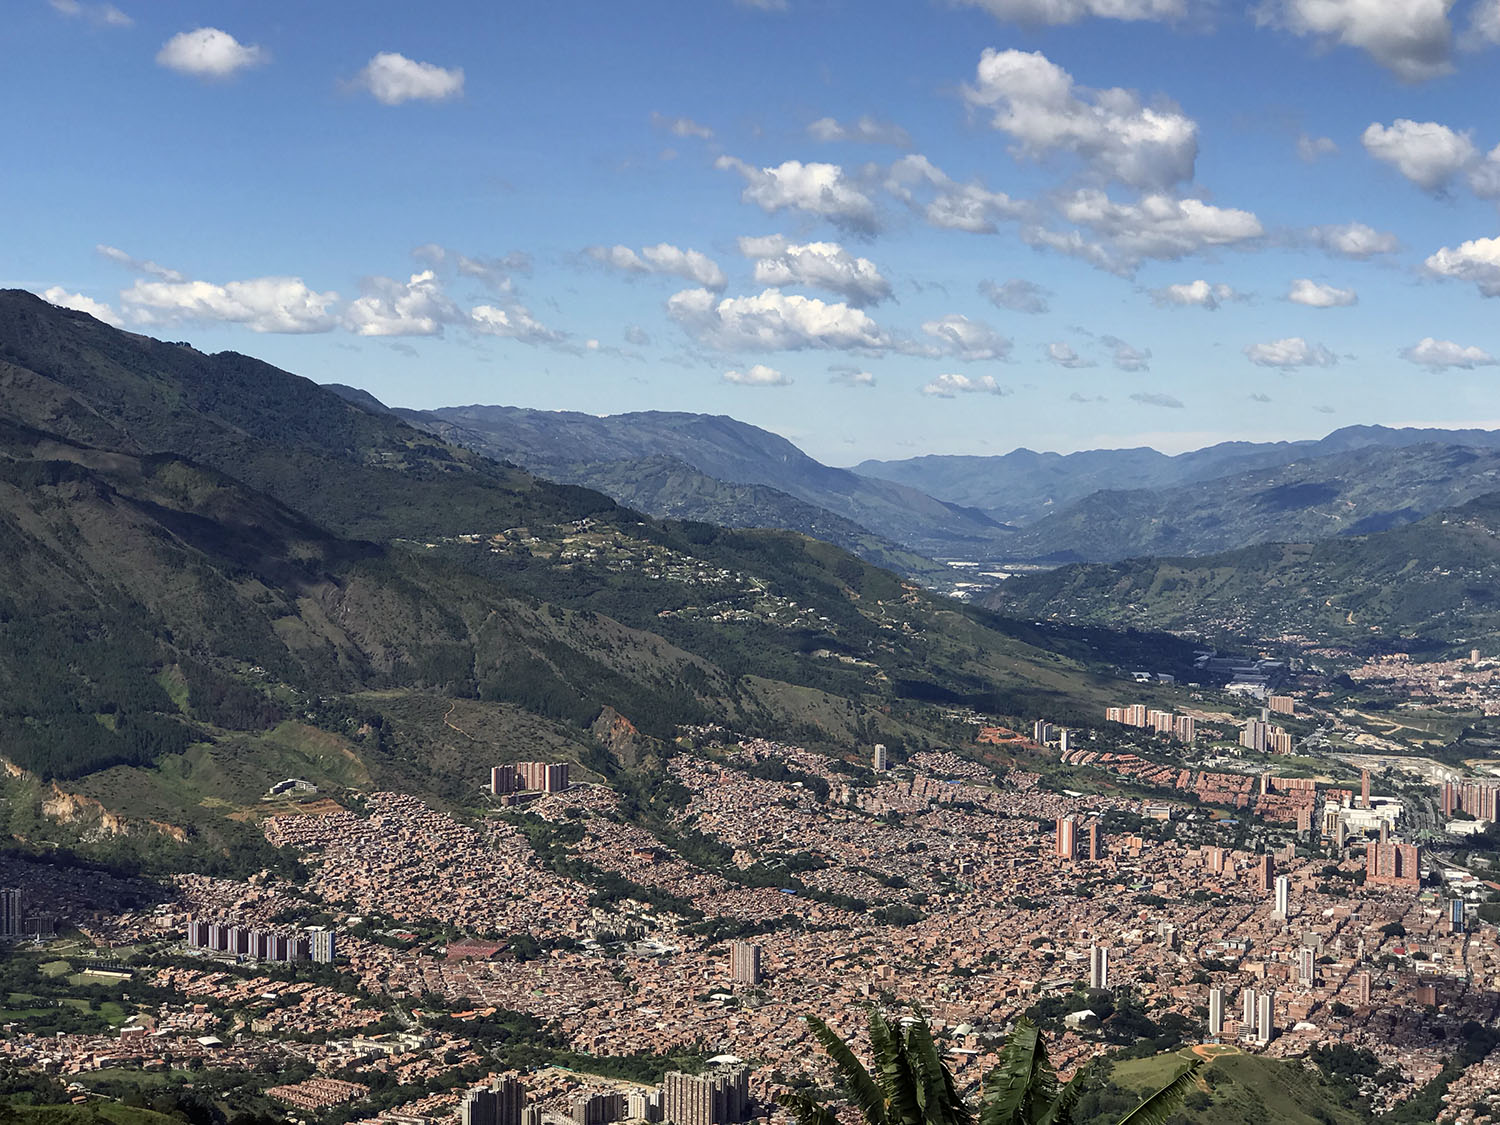 View from the overlook at the north end of Medellin